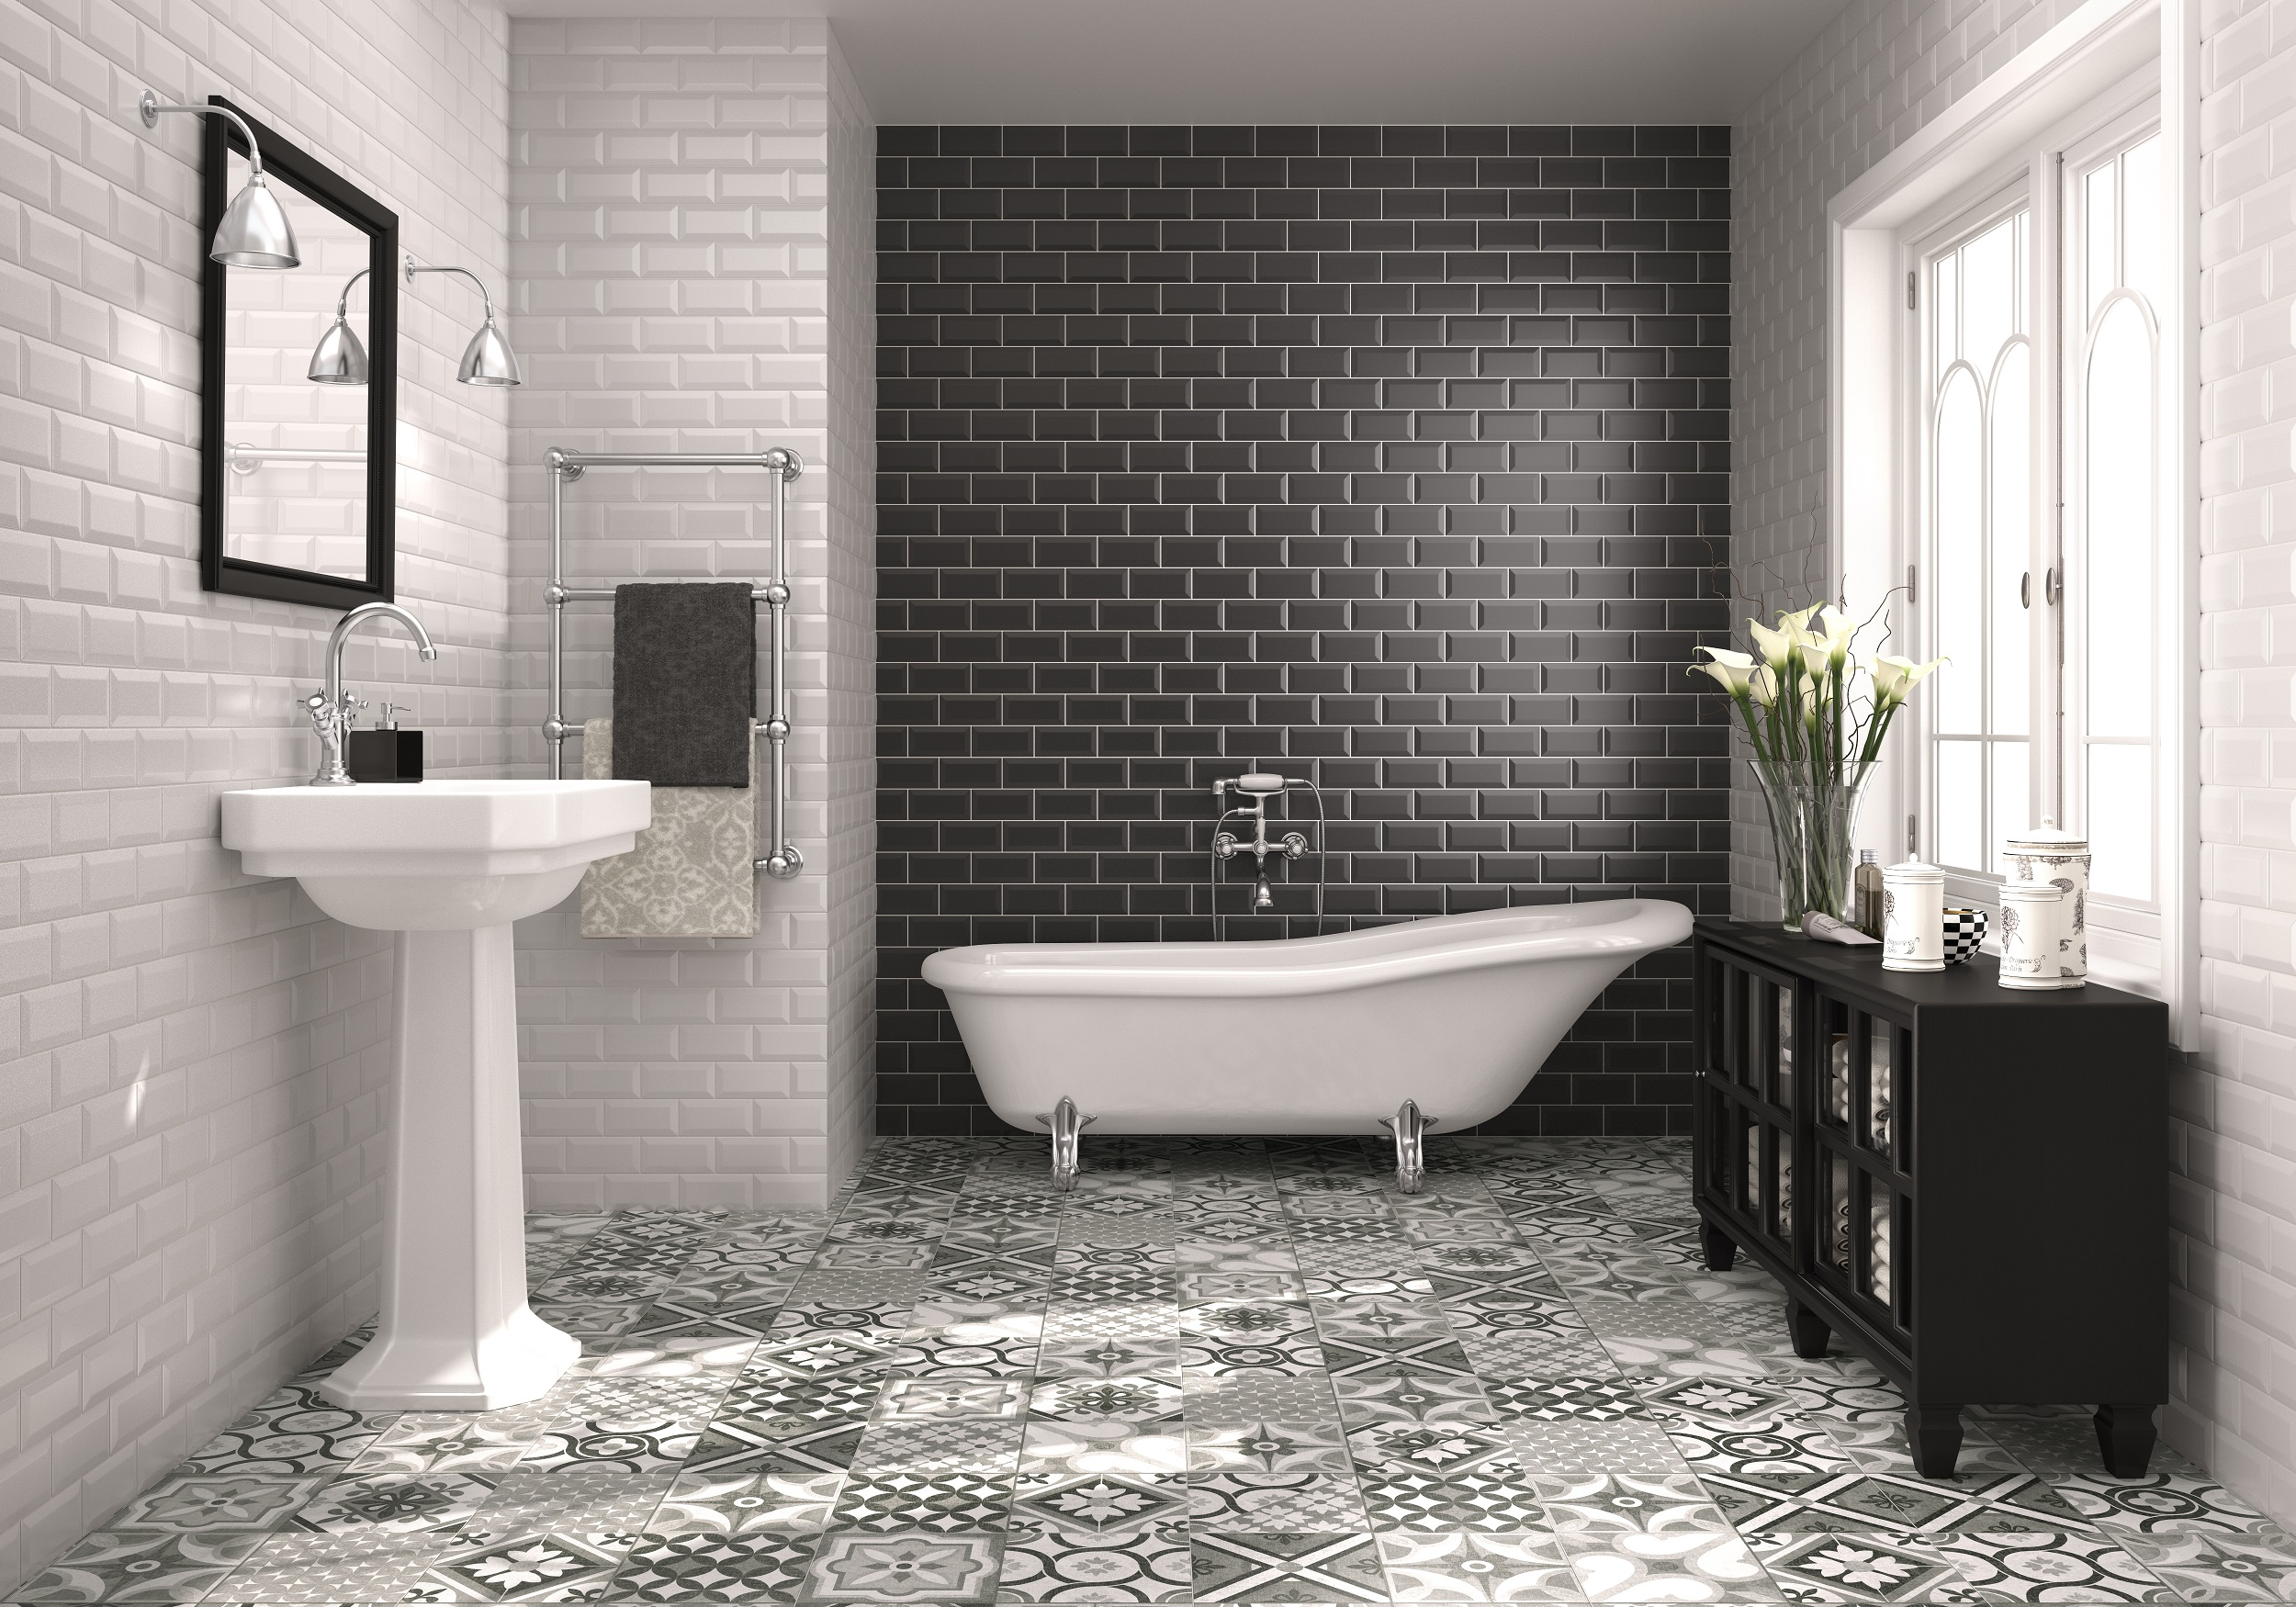 Tile Trends 2014 Subway | KitchAnn Style